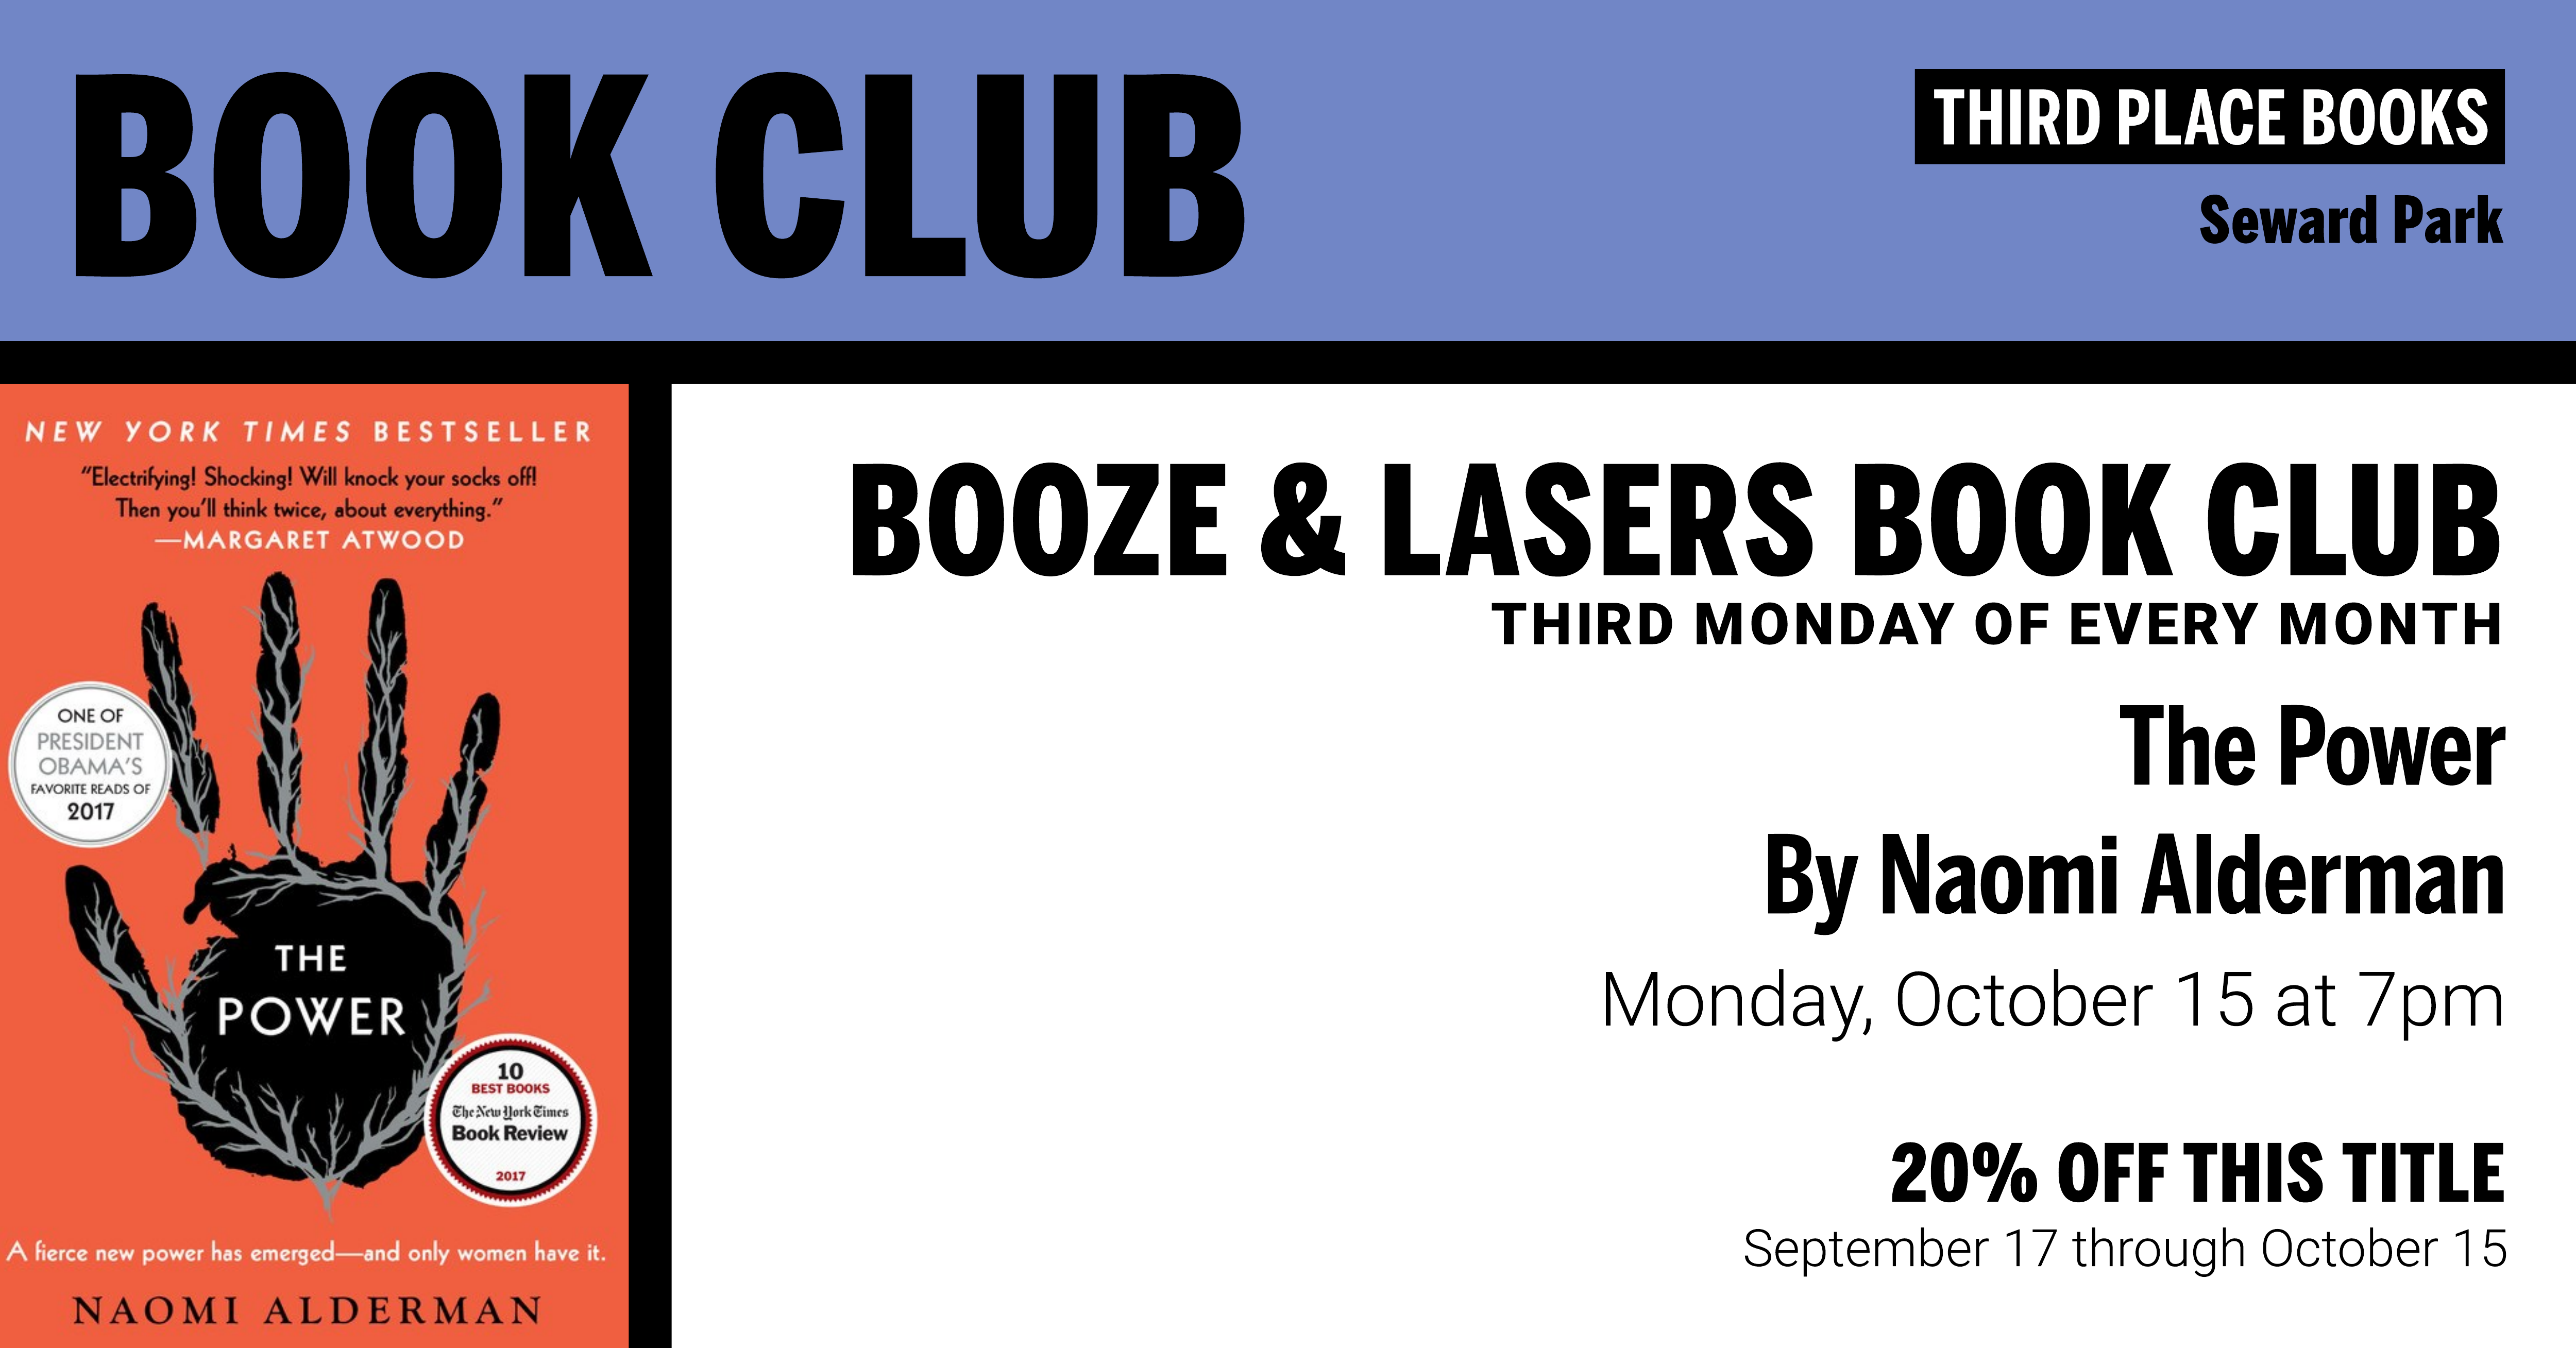 Booze & Lasers Book Club discussing The Power on Monday, October 15 at 7pm